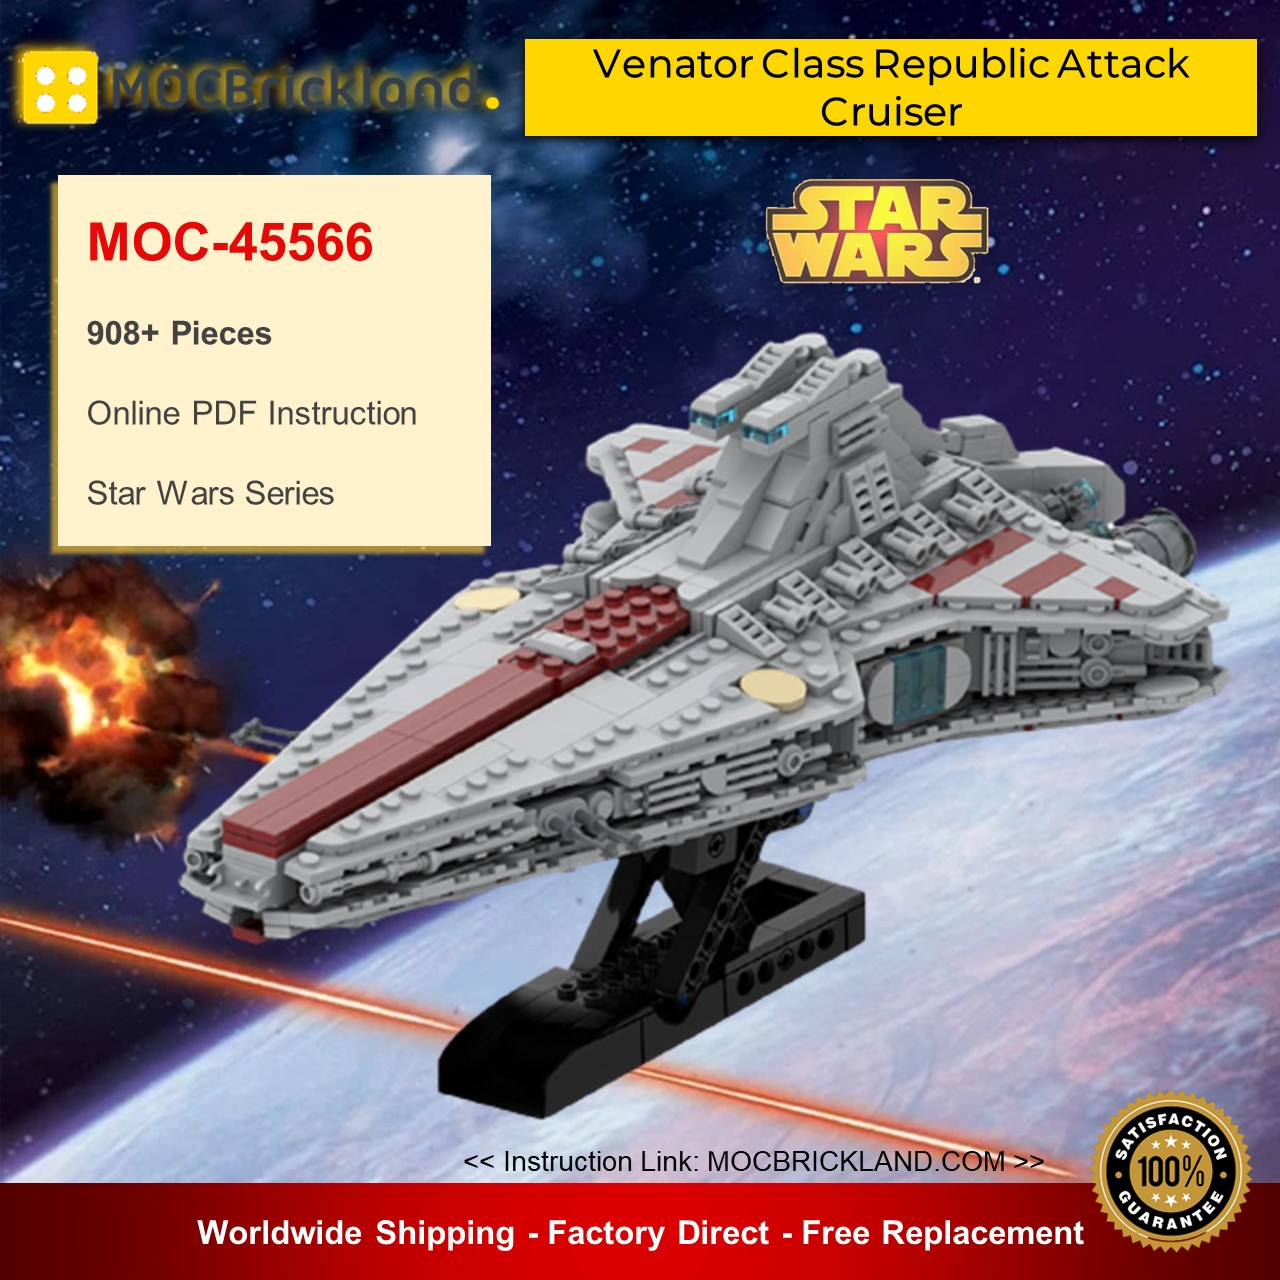 Star Wars MOC-45566 Venator Class Republic Attack Cruiser By Red5-Leader MOCBRICKLAND